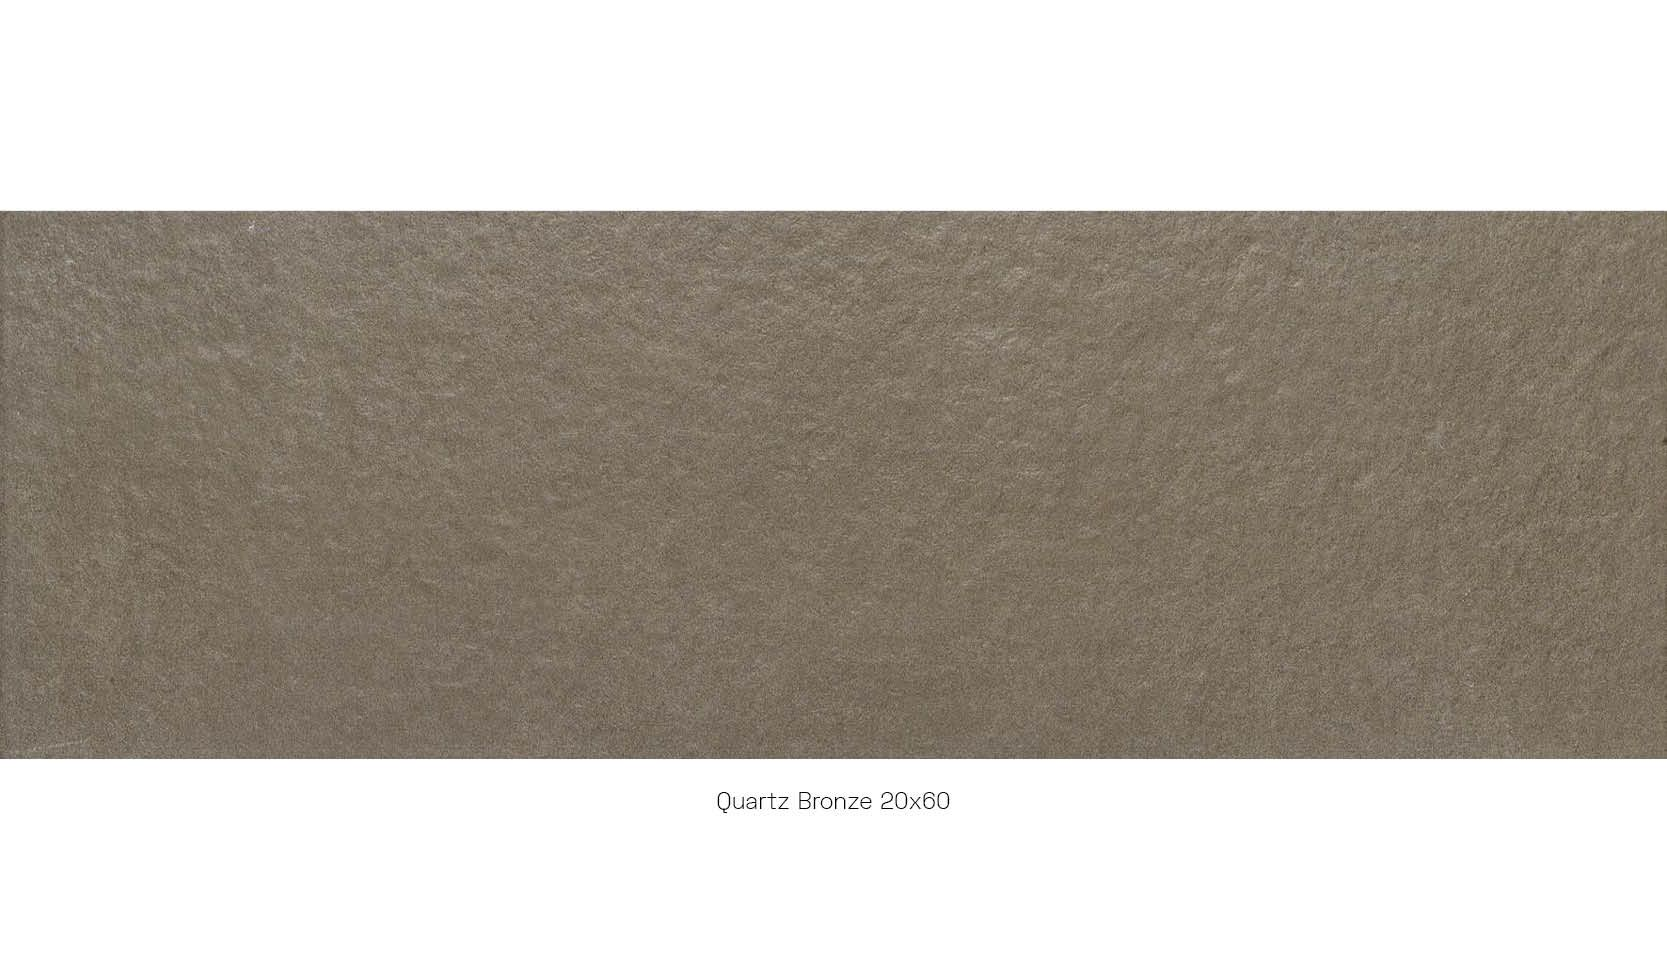 Quartz Wall Bronze 20 x 60